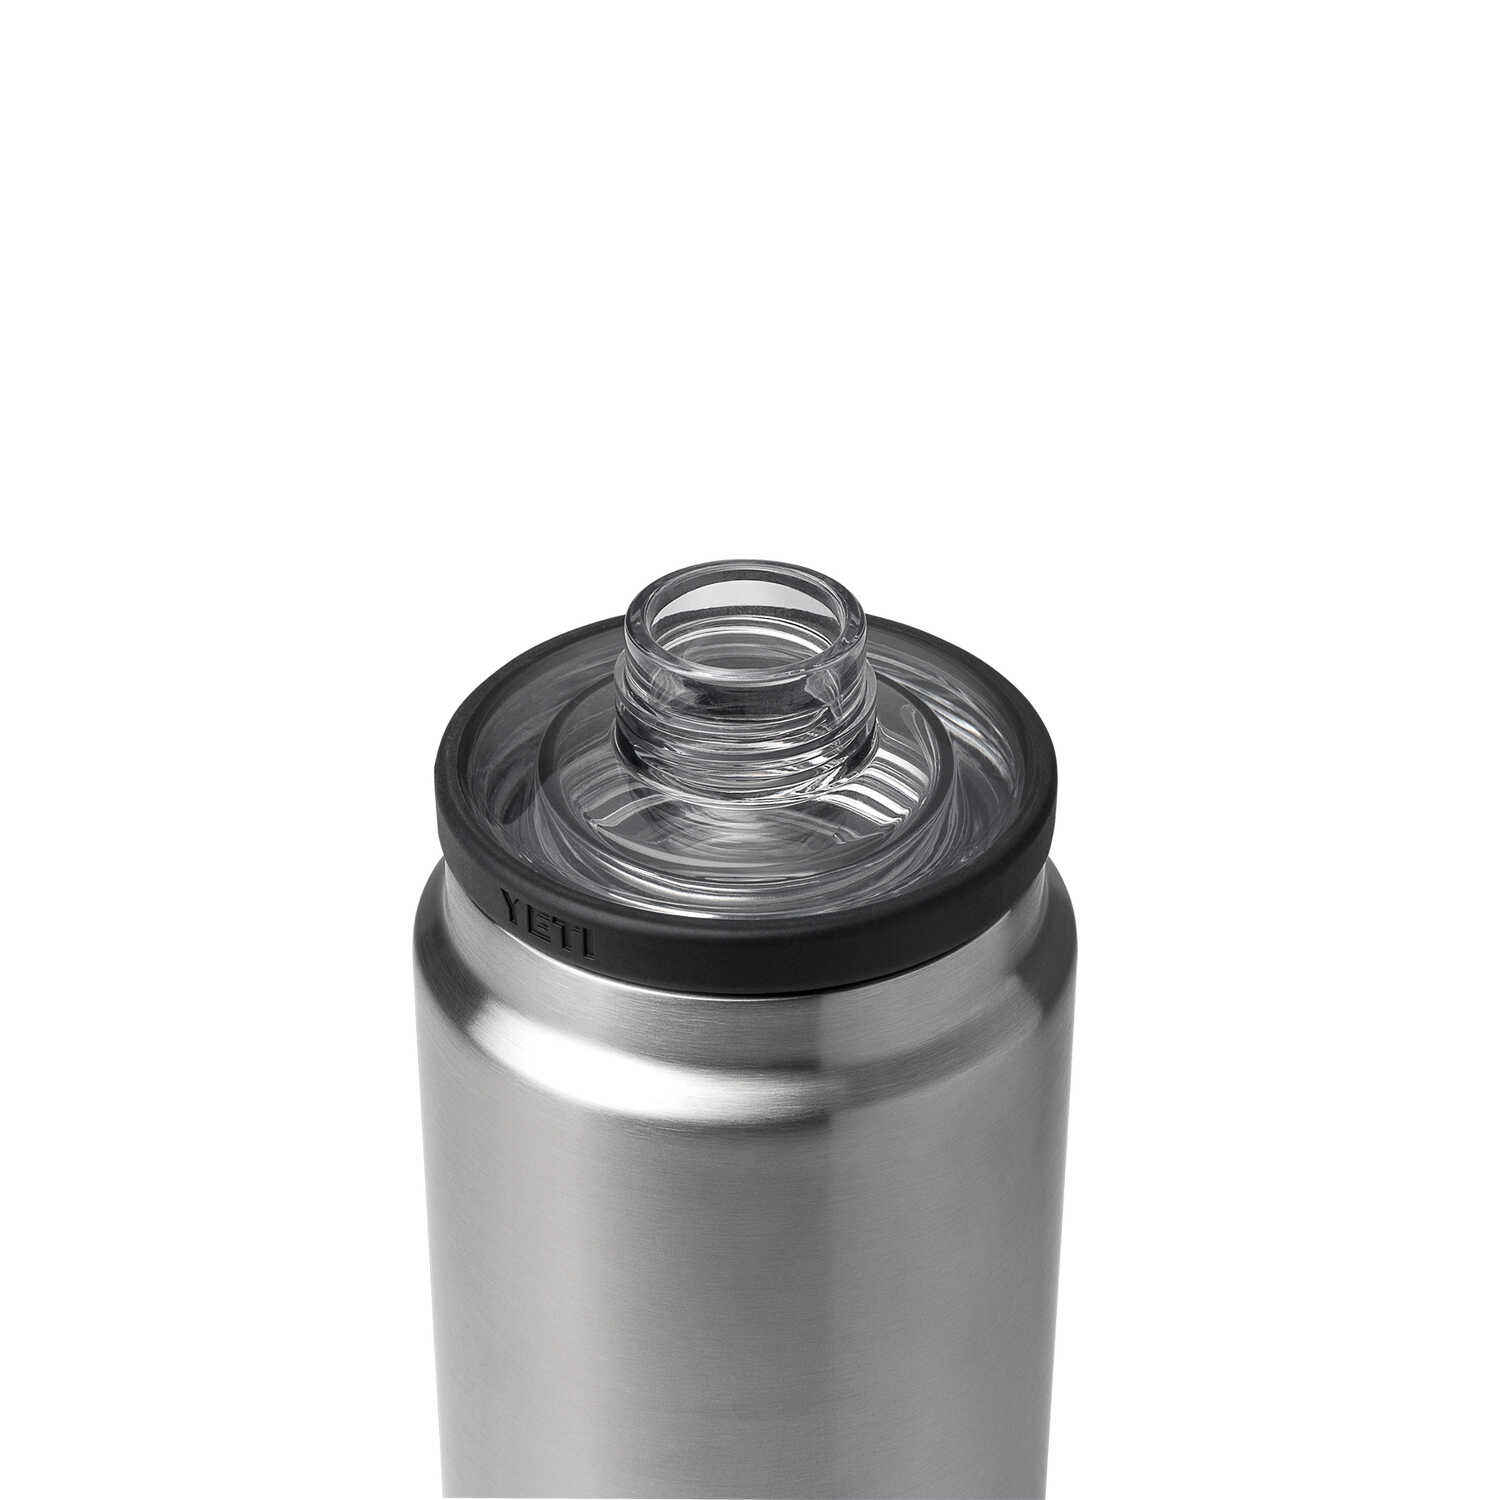 YETI  Rambler  Water Bottle Cap  Black  1 pk